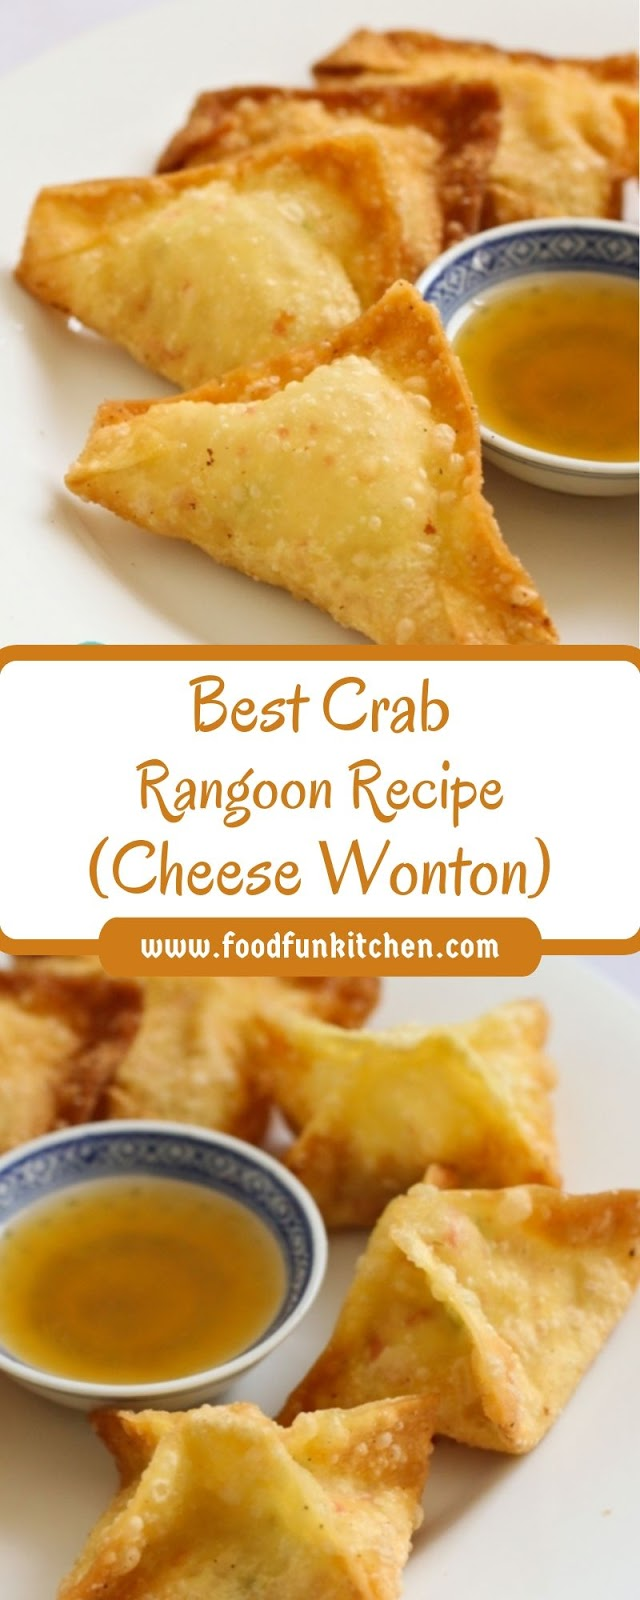 BEST CRAB RANGOON RECIPE (CHEESE WONTON)